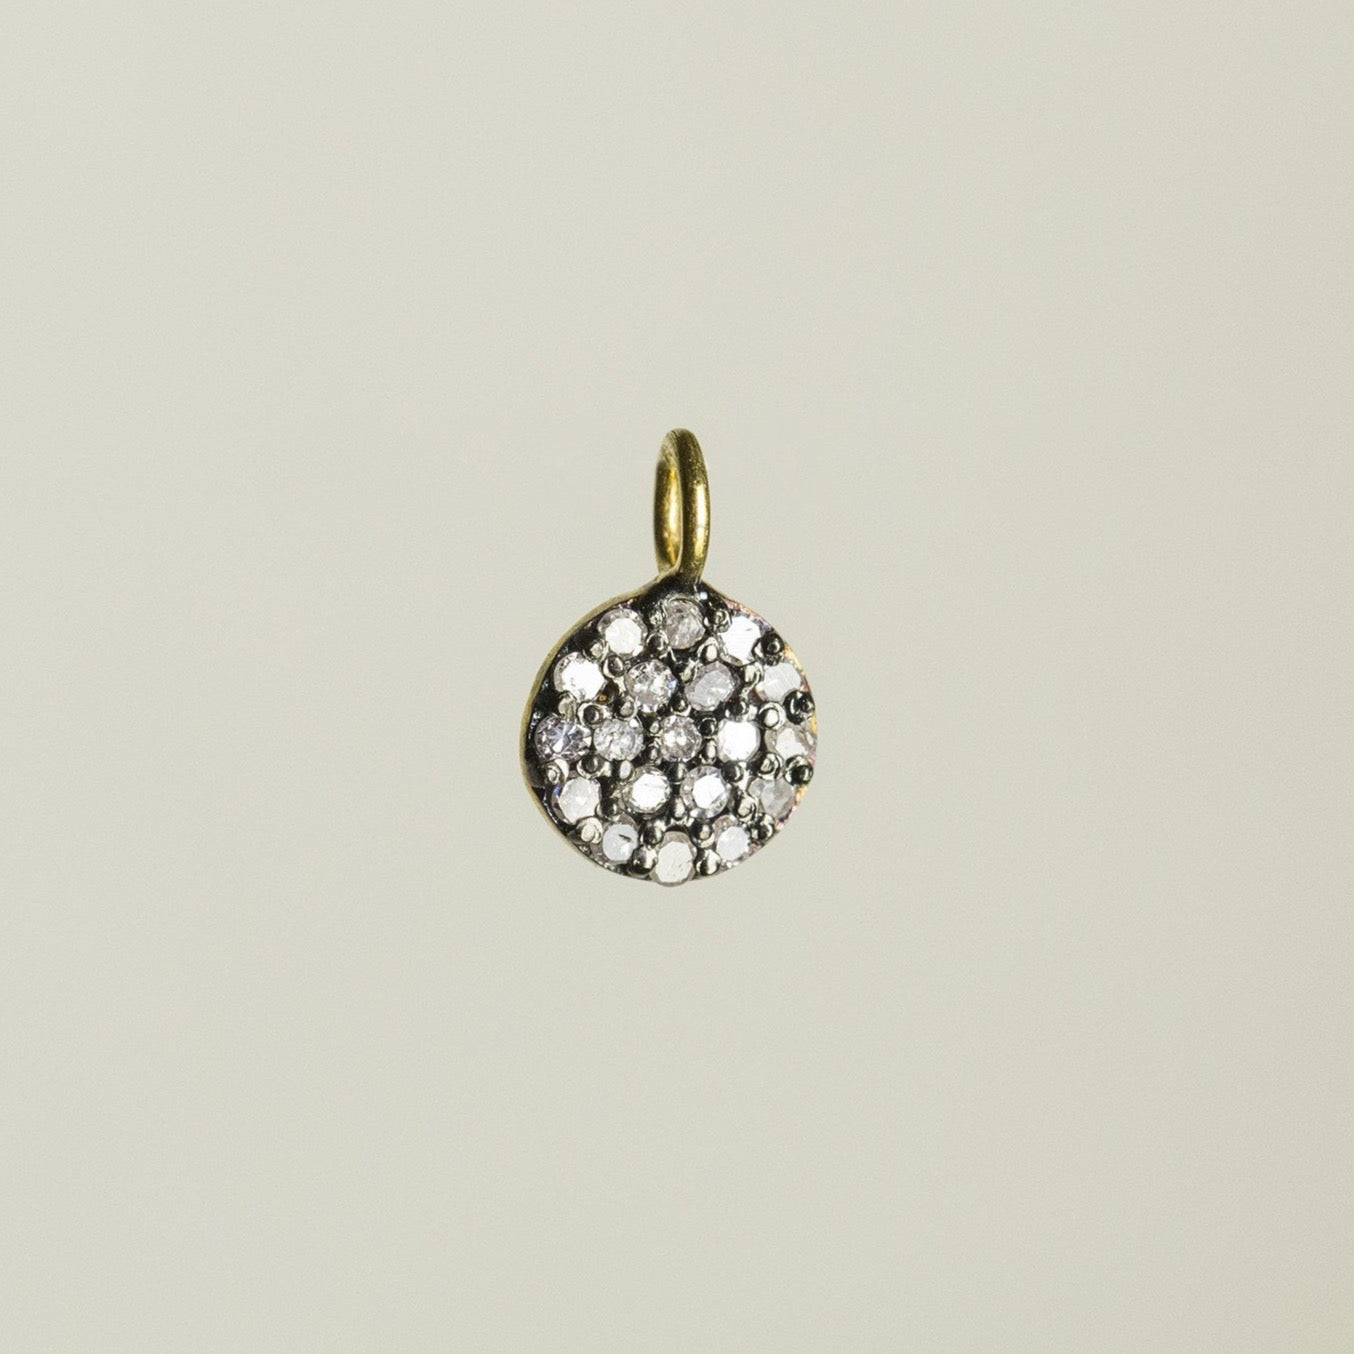 super sparkly diamonds set in oxidised silver - the beautiful small disc pendant